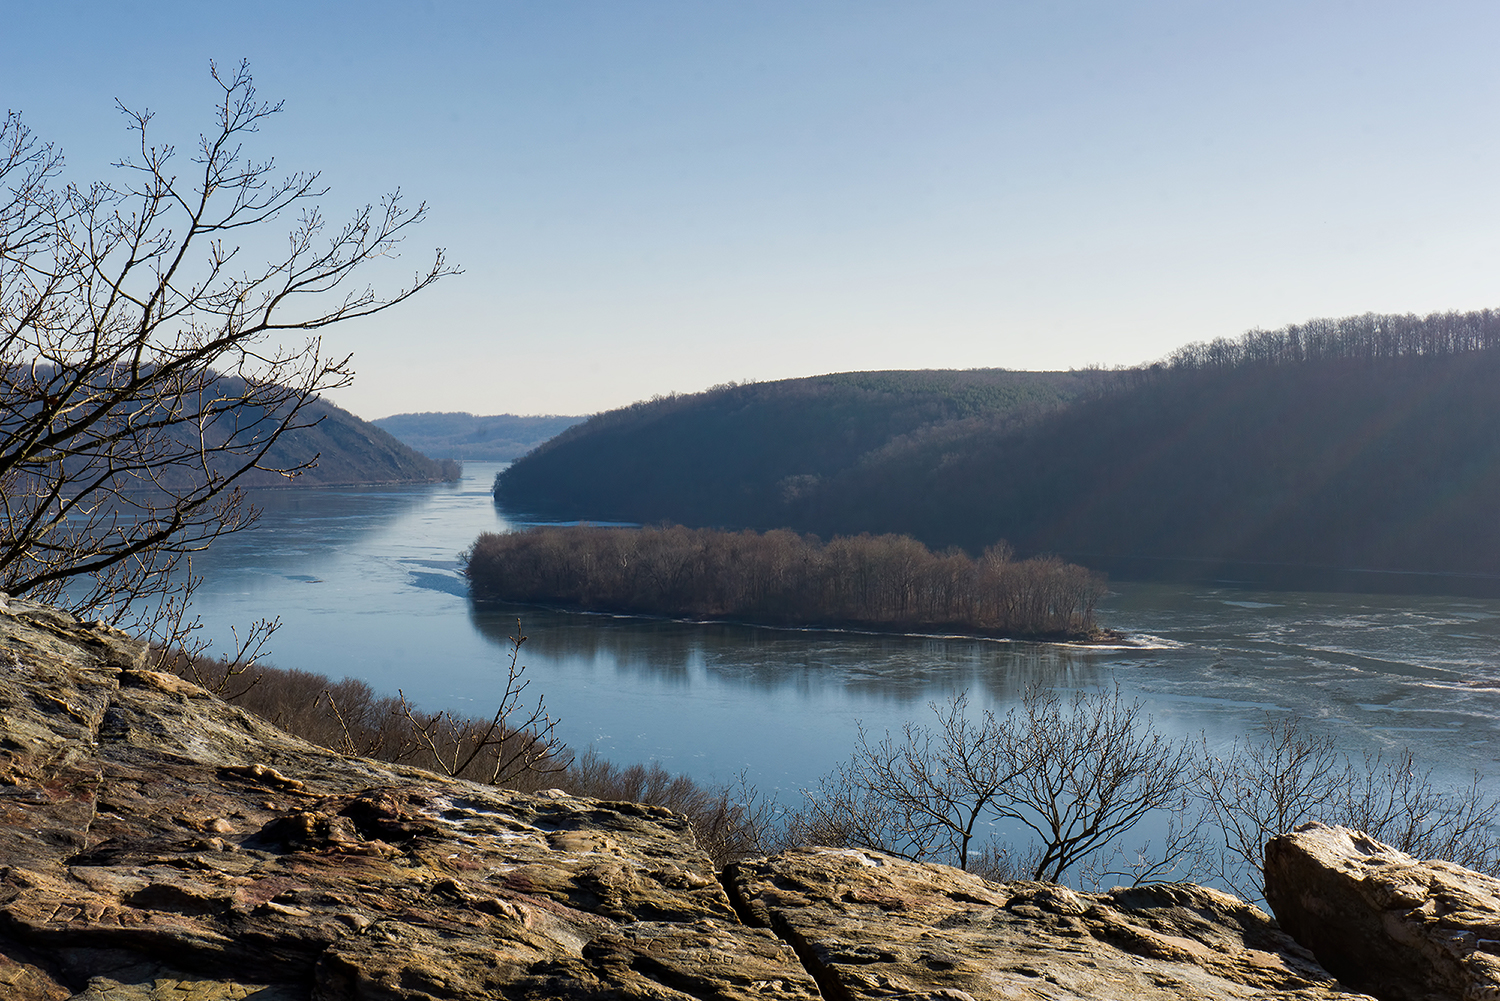 House Rock Nature Preserve - A rustic and rural nature preserve with an impressive view over the Susquehanna ...